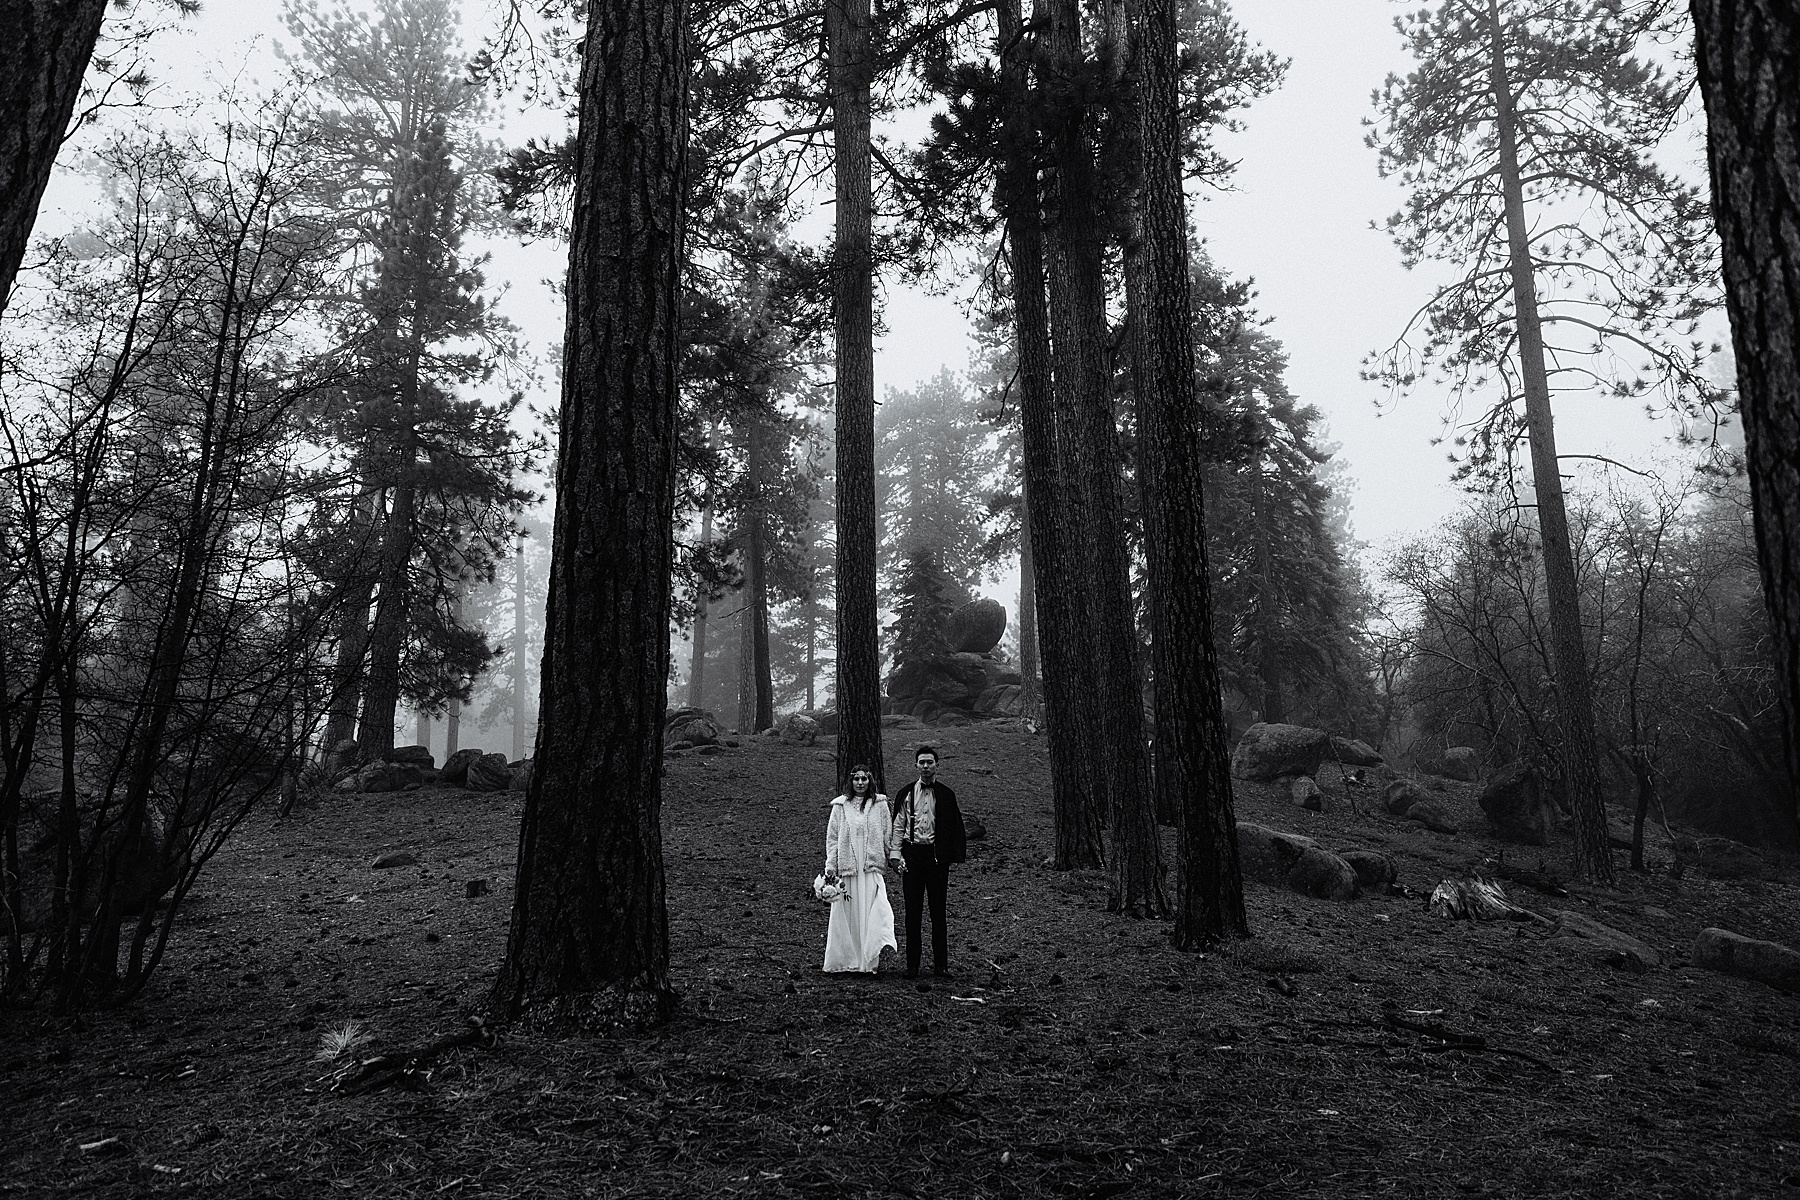 Foggy-California-Forest-Elopement-Photographer079.jpg